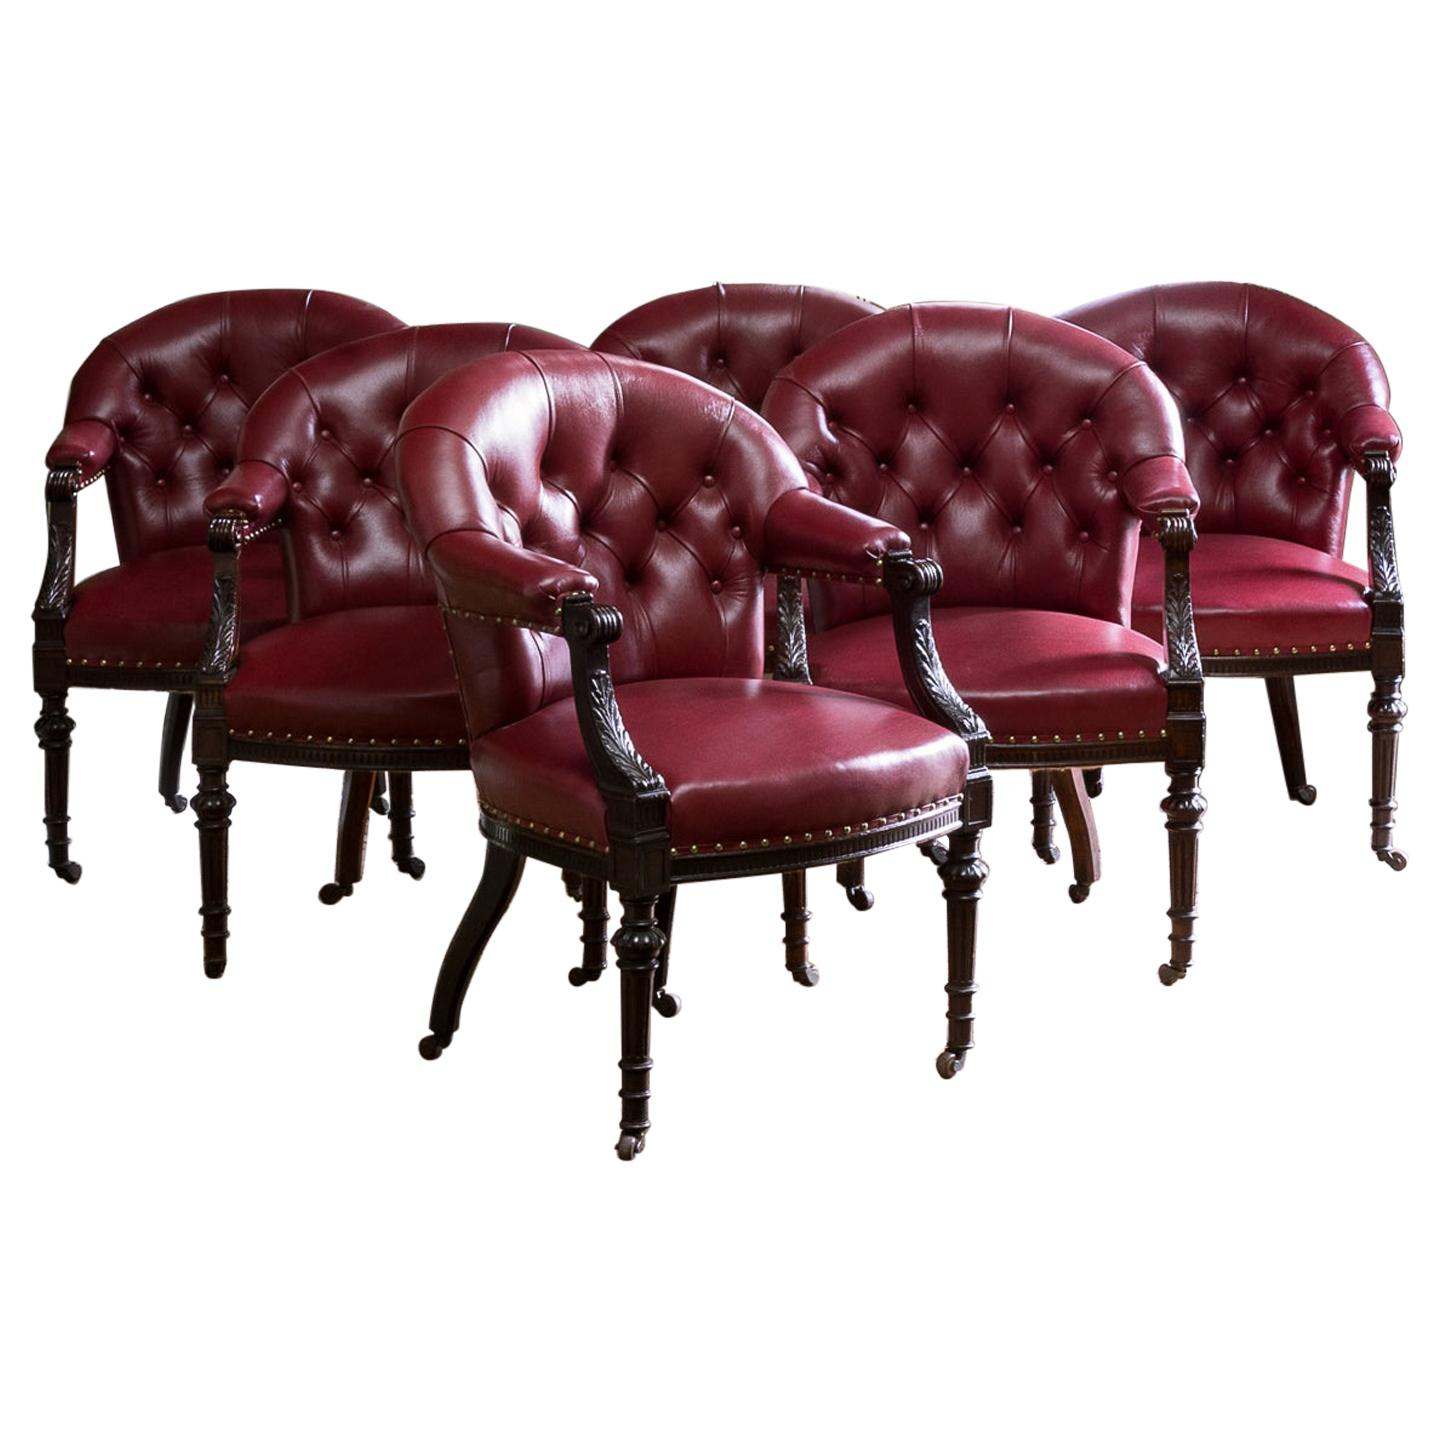 Set of Six Mid-Victorian Carved Oak and Leather Upholstered Club Armchairs